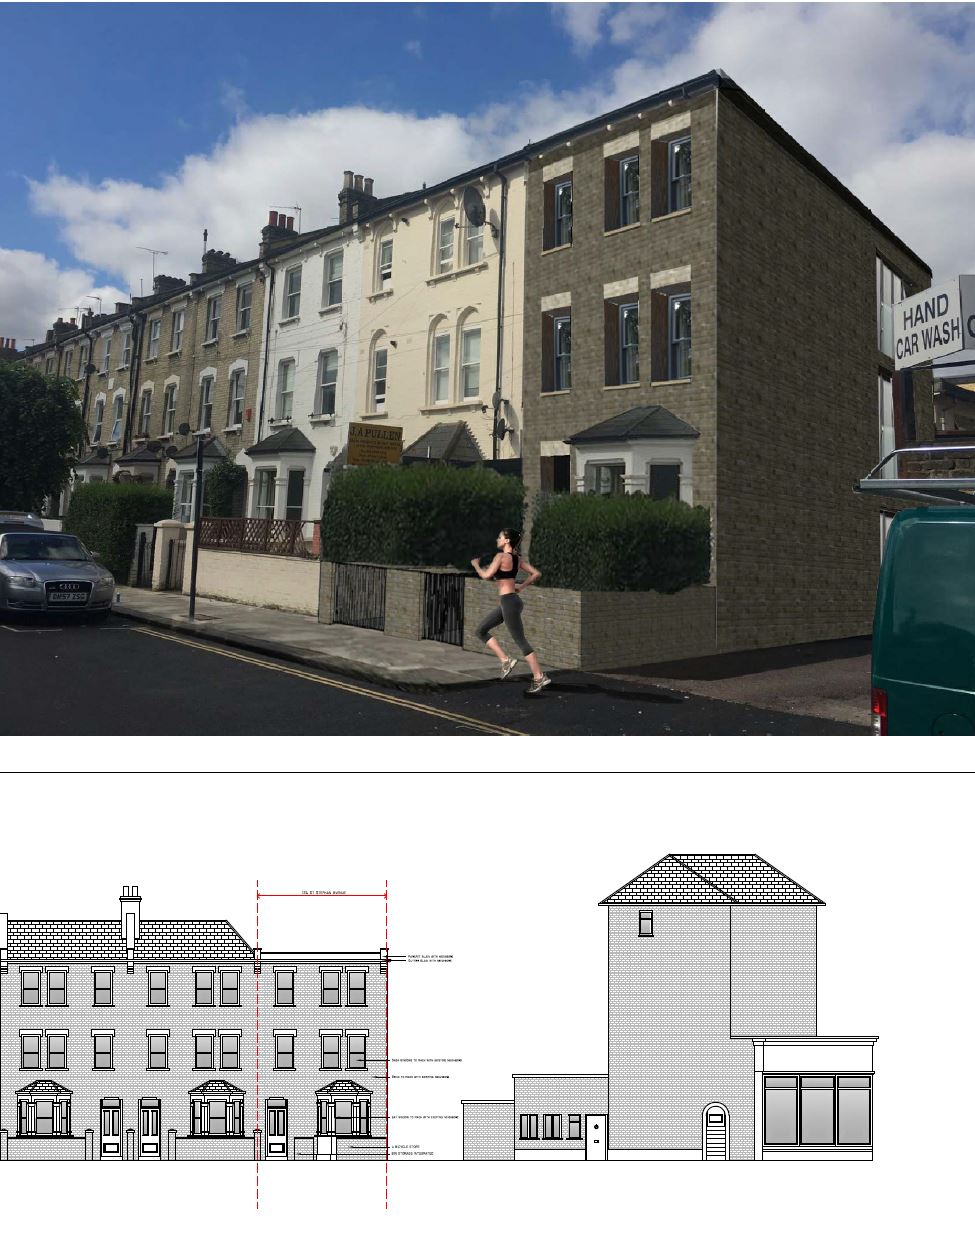 Garage conversion into a Two bedroom apartment - Hammersmith Council